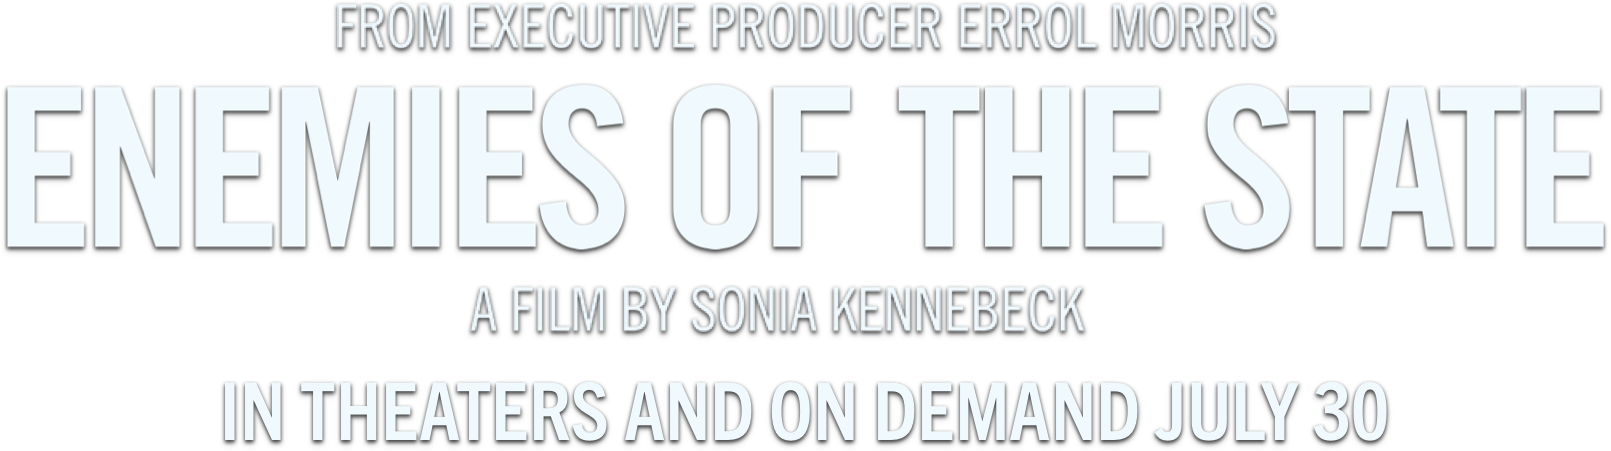 Title or logo for Enemies of the State